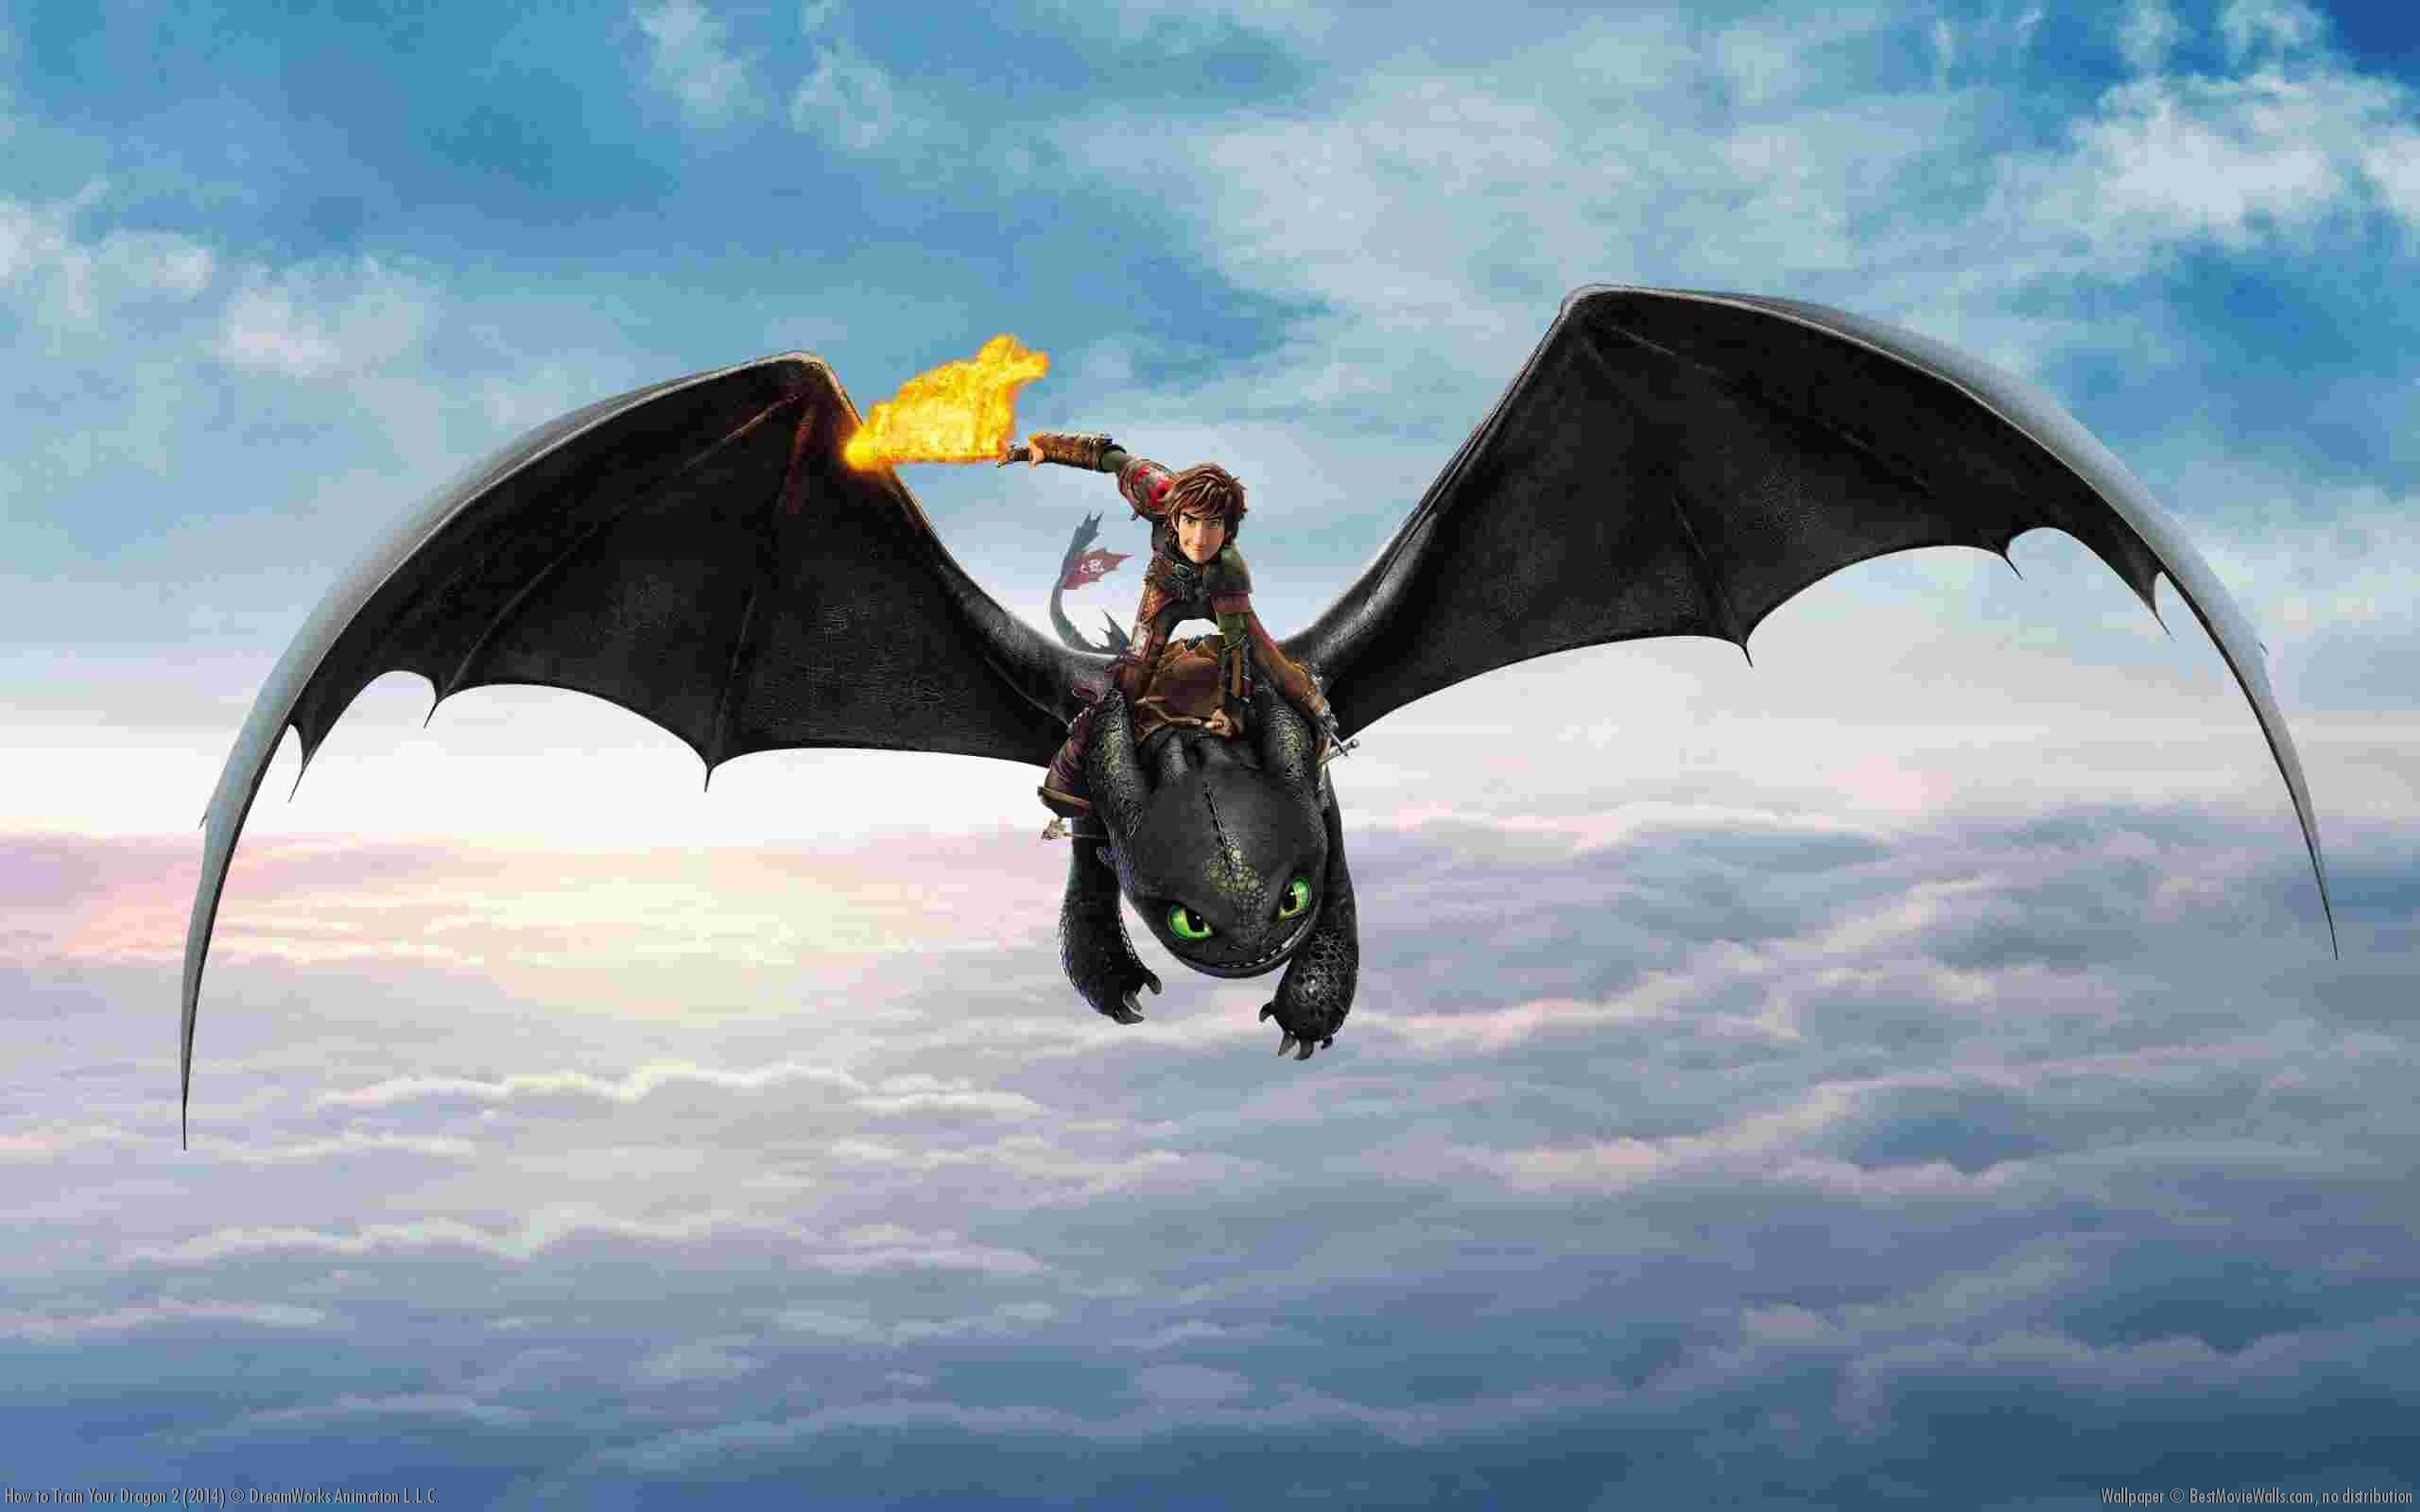 Httyd2 07 With Images How To Train Your Dragon Dragon Movies